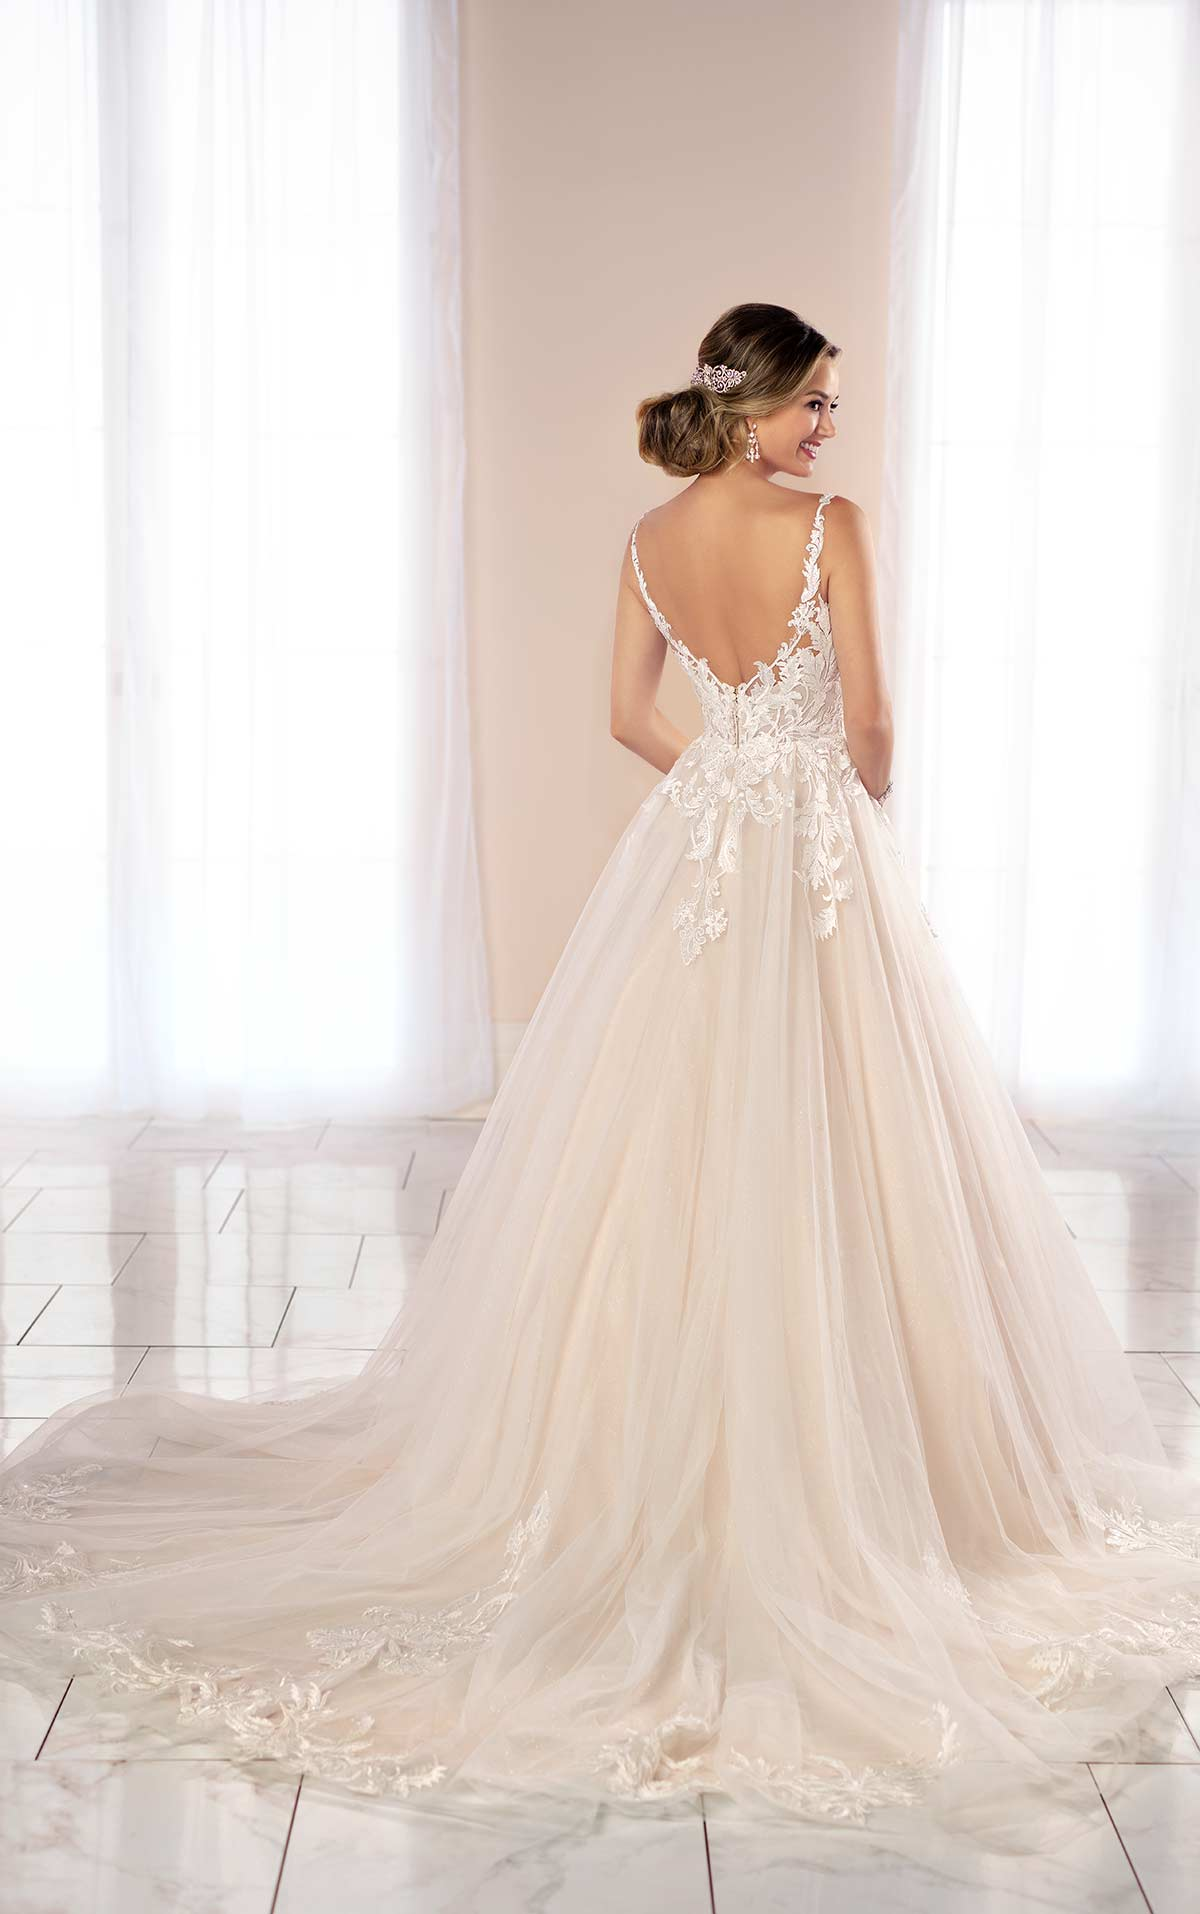 6993-Justice-Stella-York-Tulle-Lace-Ballgown-wedding-dress-straps